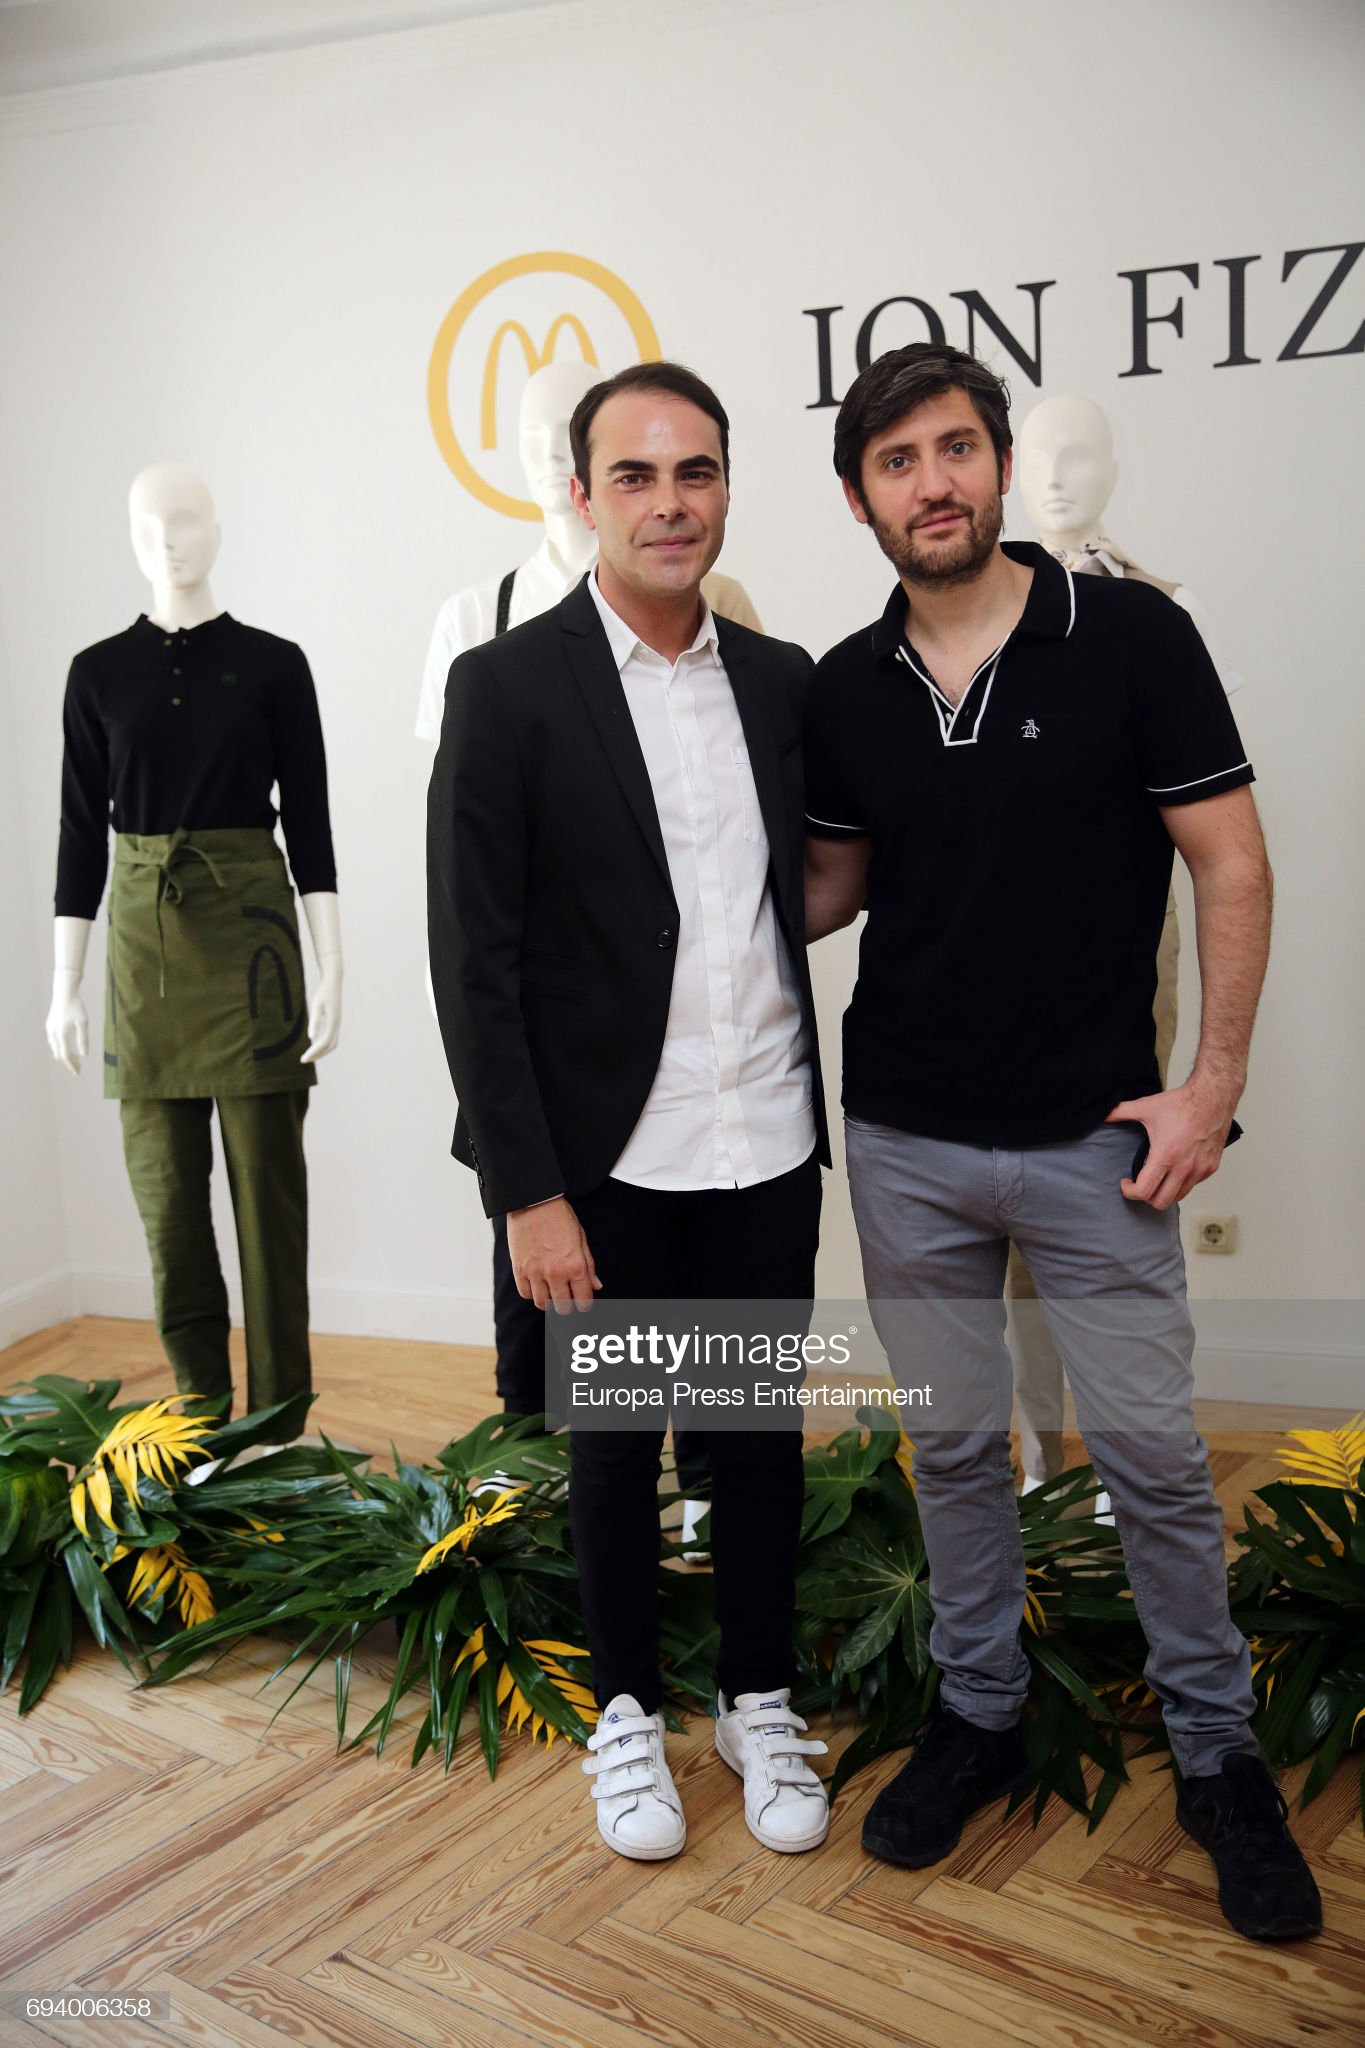 ¿Cuánto mide Max Marieges? - Altura Fashion-designer-ion-fiz-and-actor-max-marieges-present-the-new-on-picture-id694006358?s=2048x2048